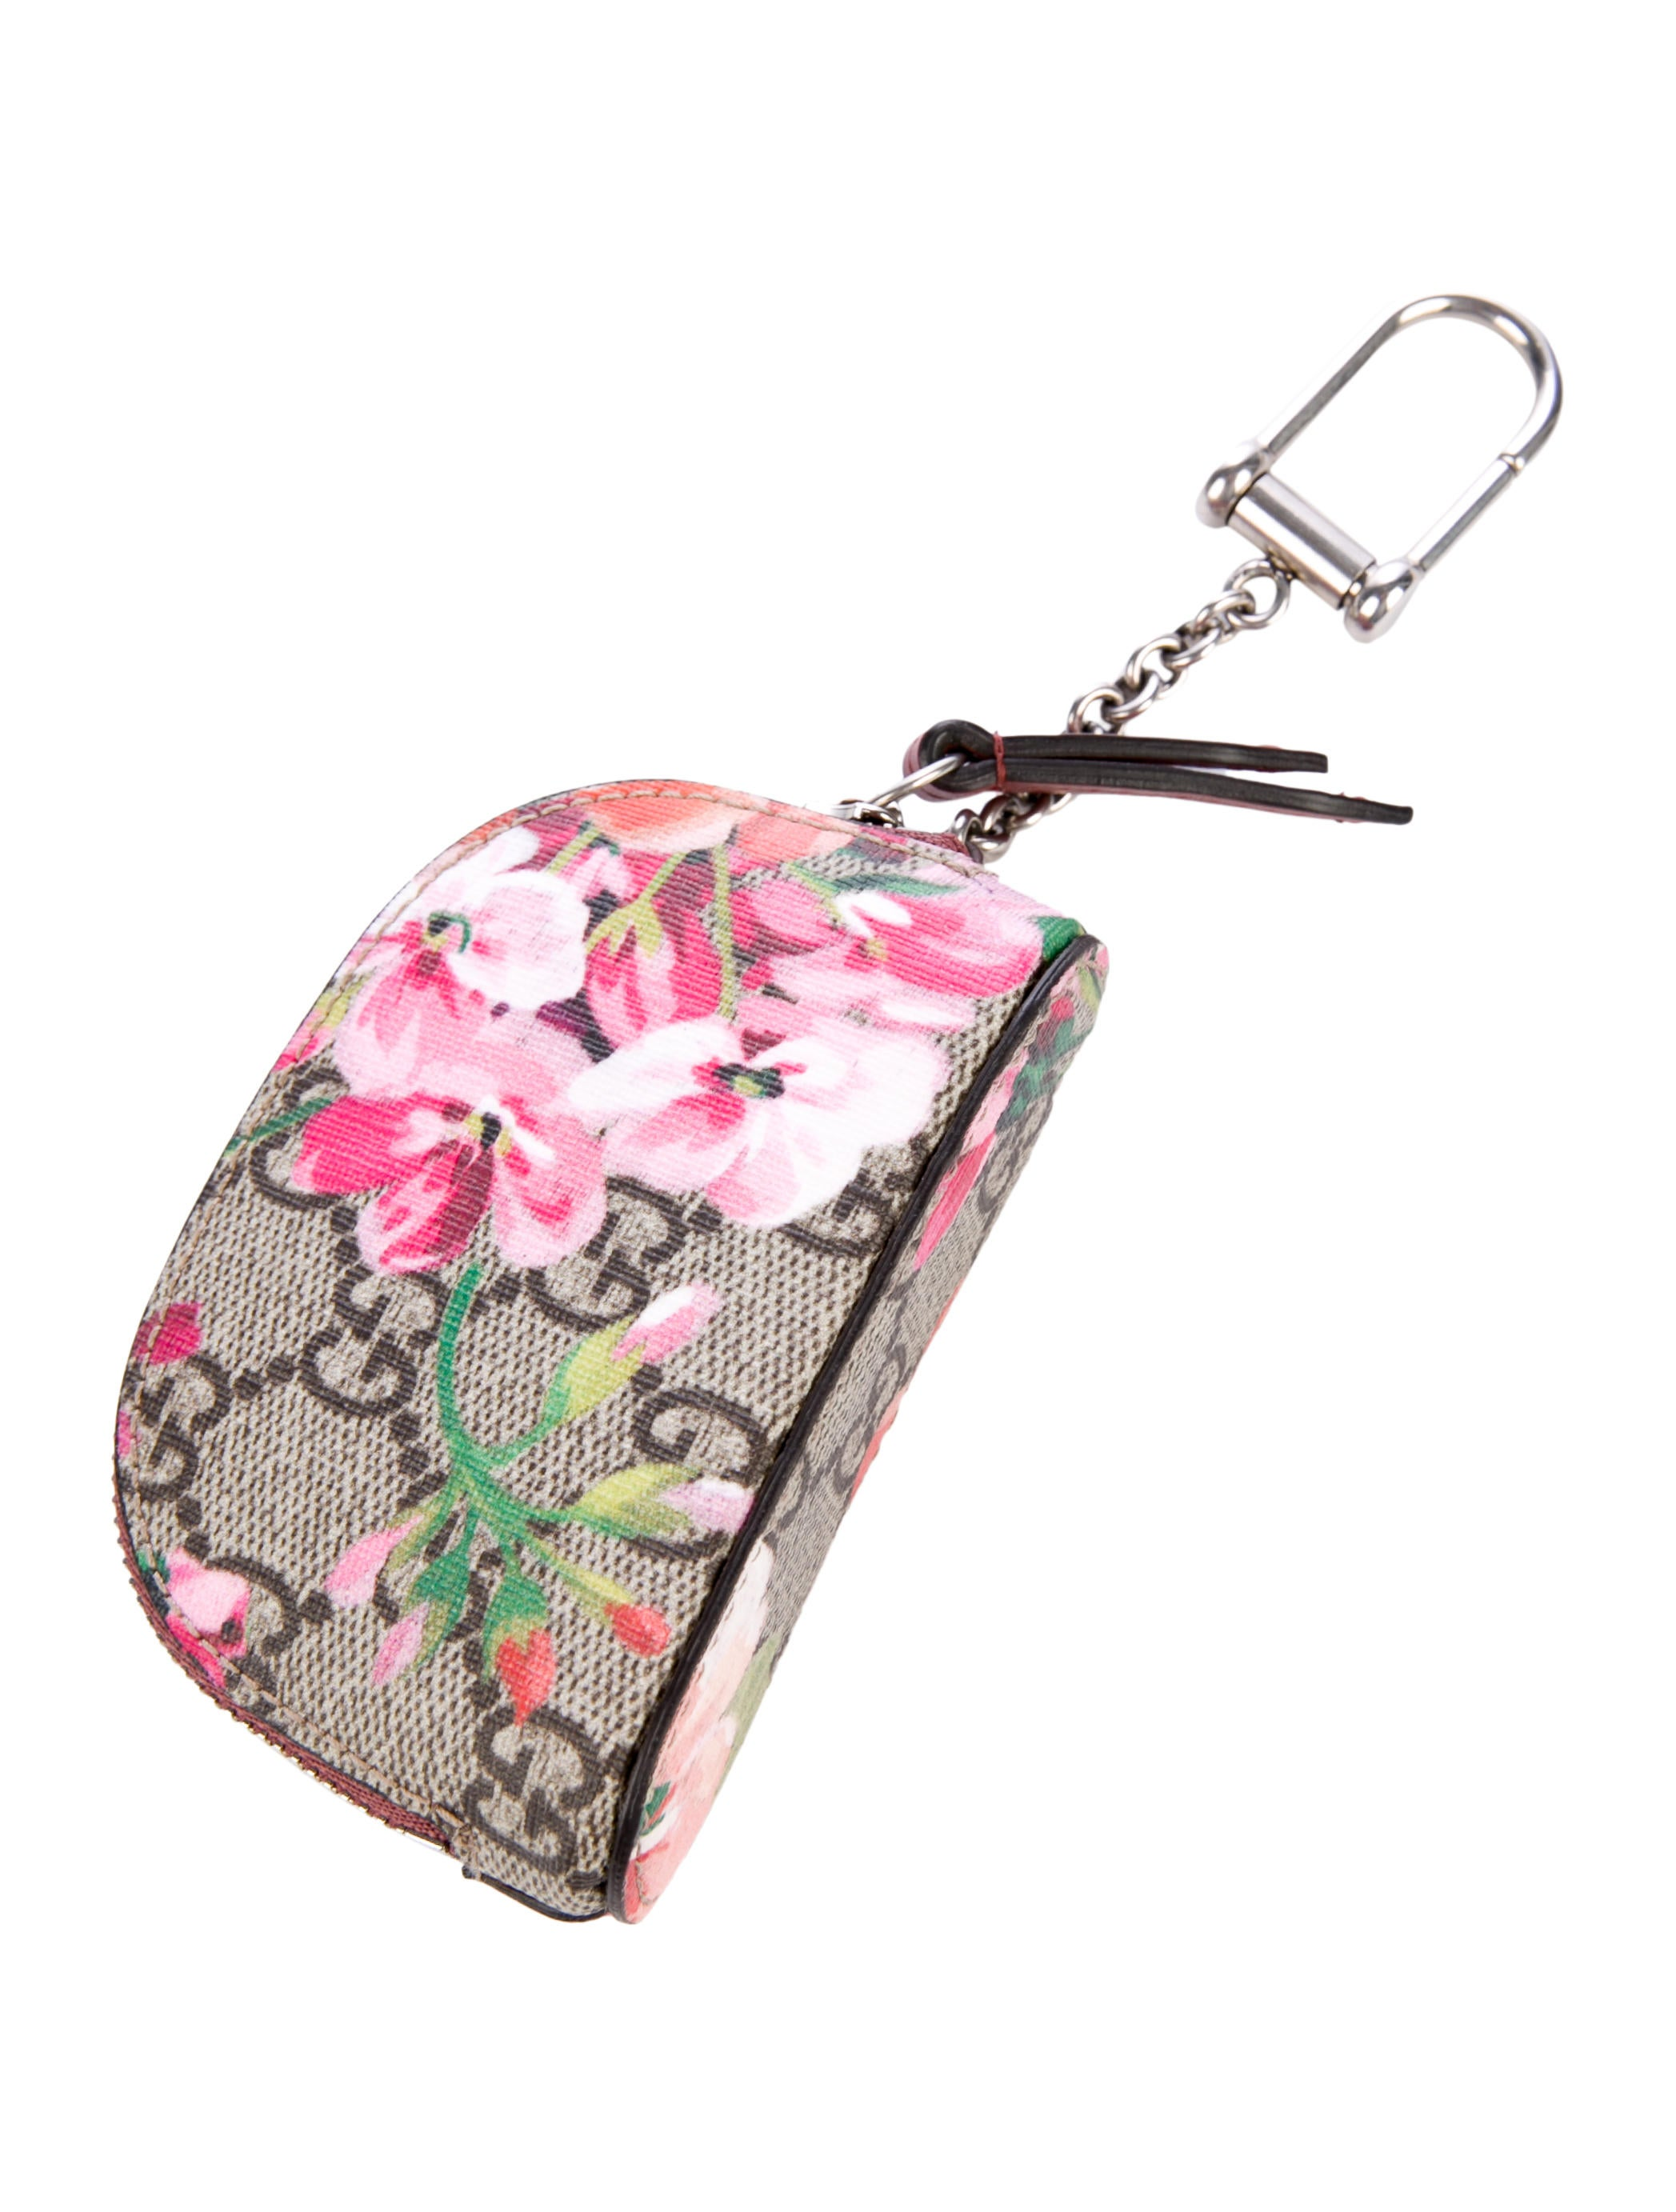 77e1c1a7c3ae Gucci GG Blooms Keychain - Accessories - GUC203771 | The RealReal